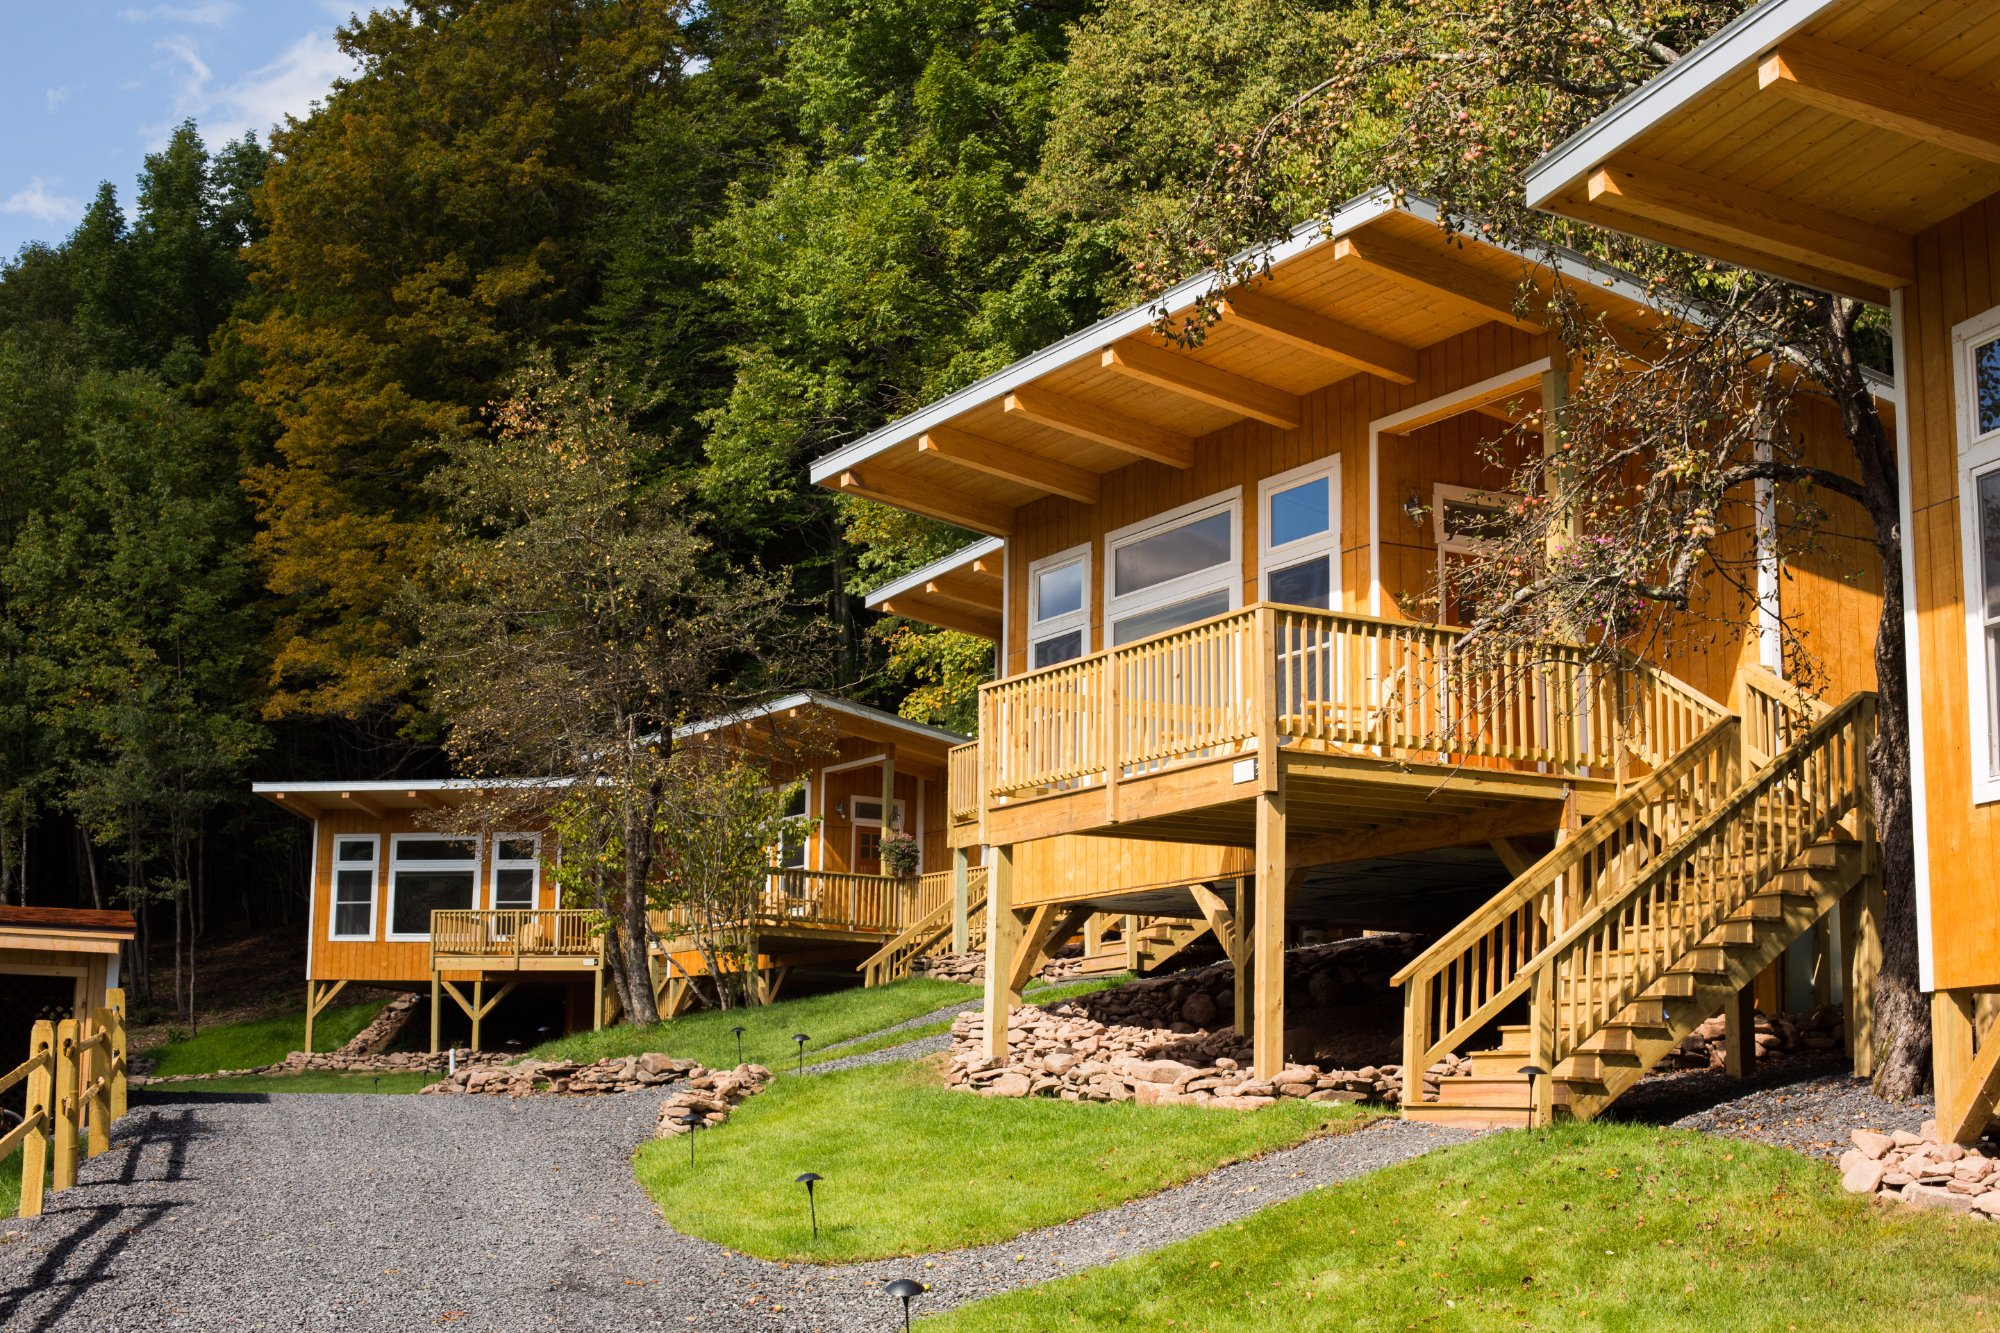 7 Unique Campgrounds And Cabin Resorts In New York That